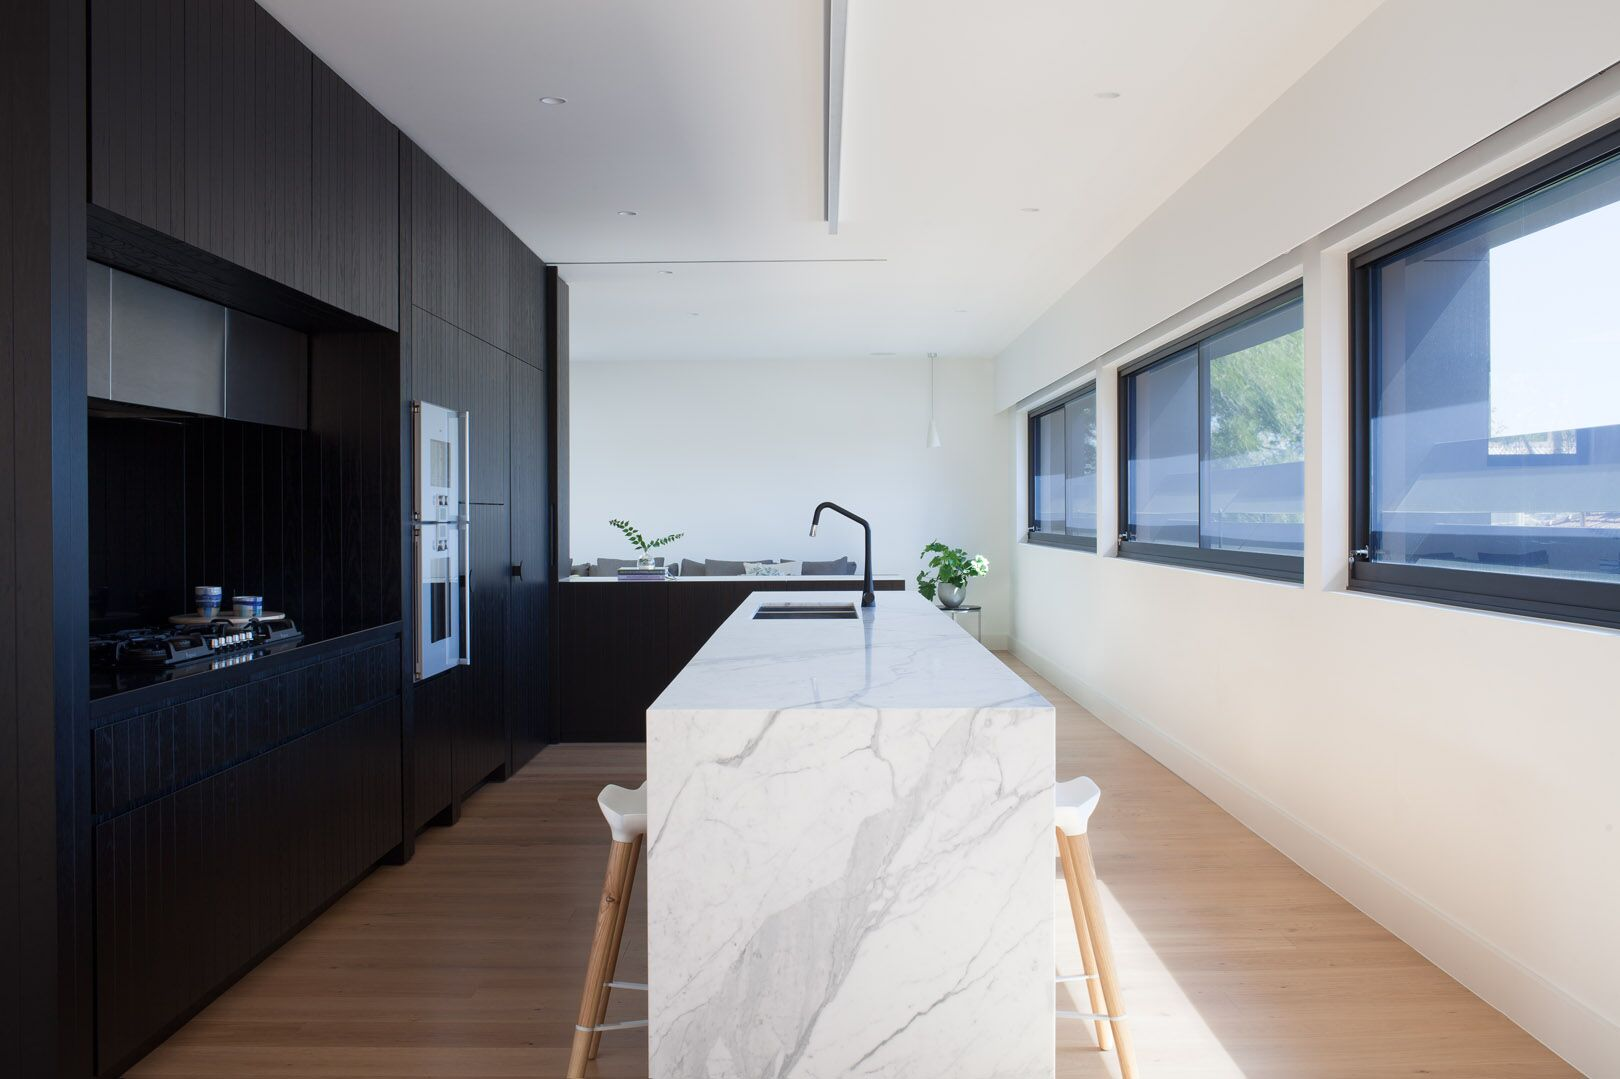 Gallery Of Goodwood By Rva Local Australian Residential Architecture Design And Interior Renovations Richmond, Vic Image 10